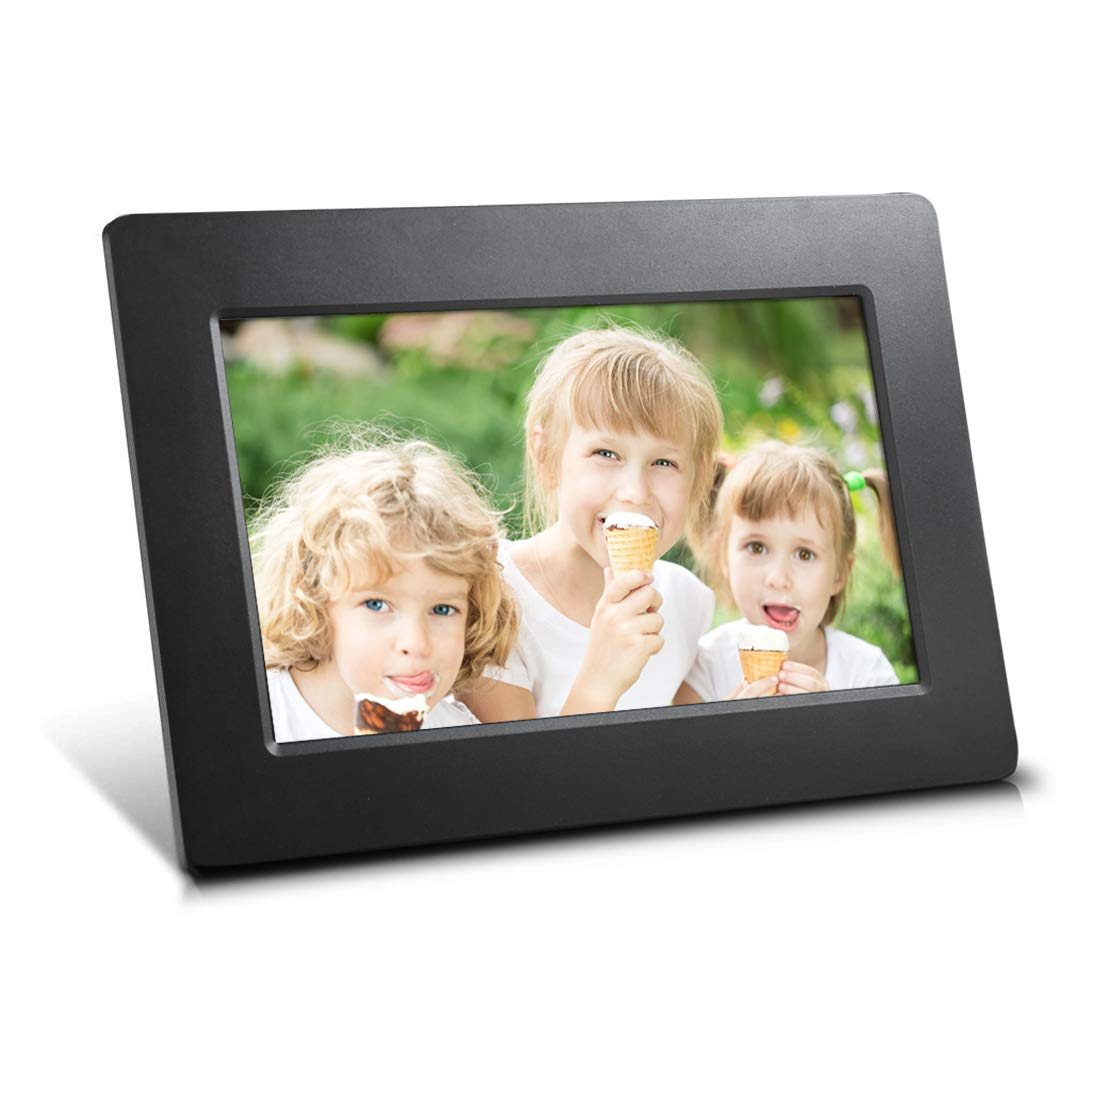 7-inch High Resolution Wide Screen 16:9 Ultra-Thin Digital Photo Frame, Plug and Play by Sungale